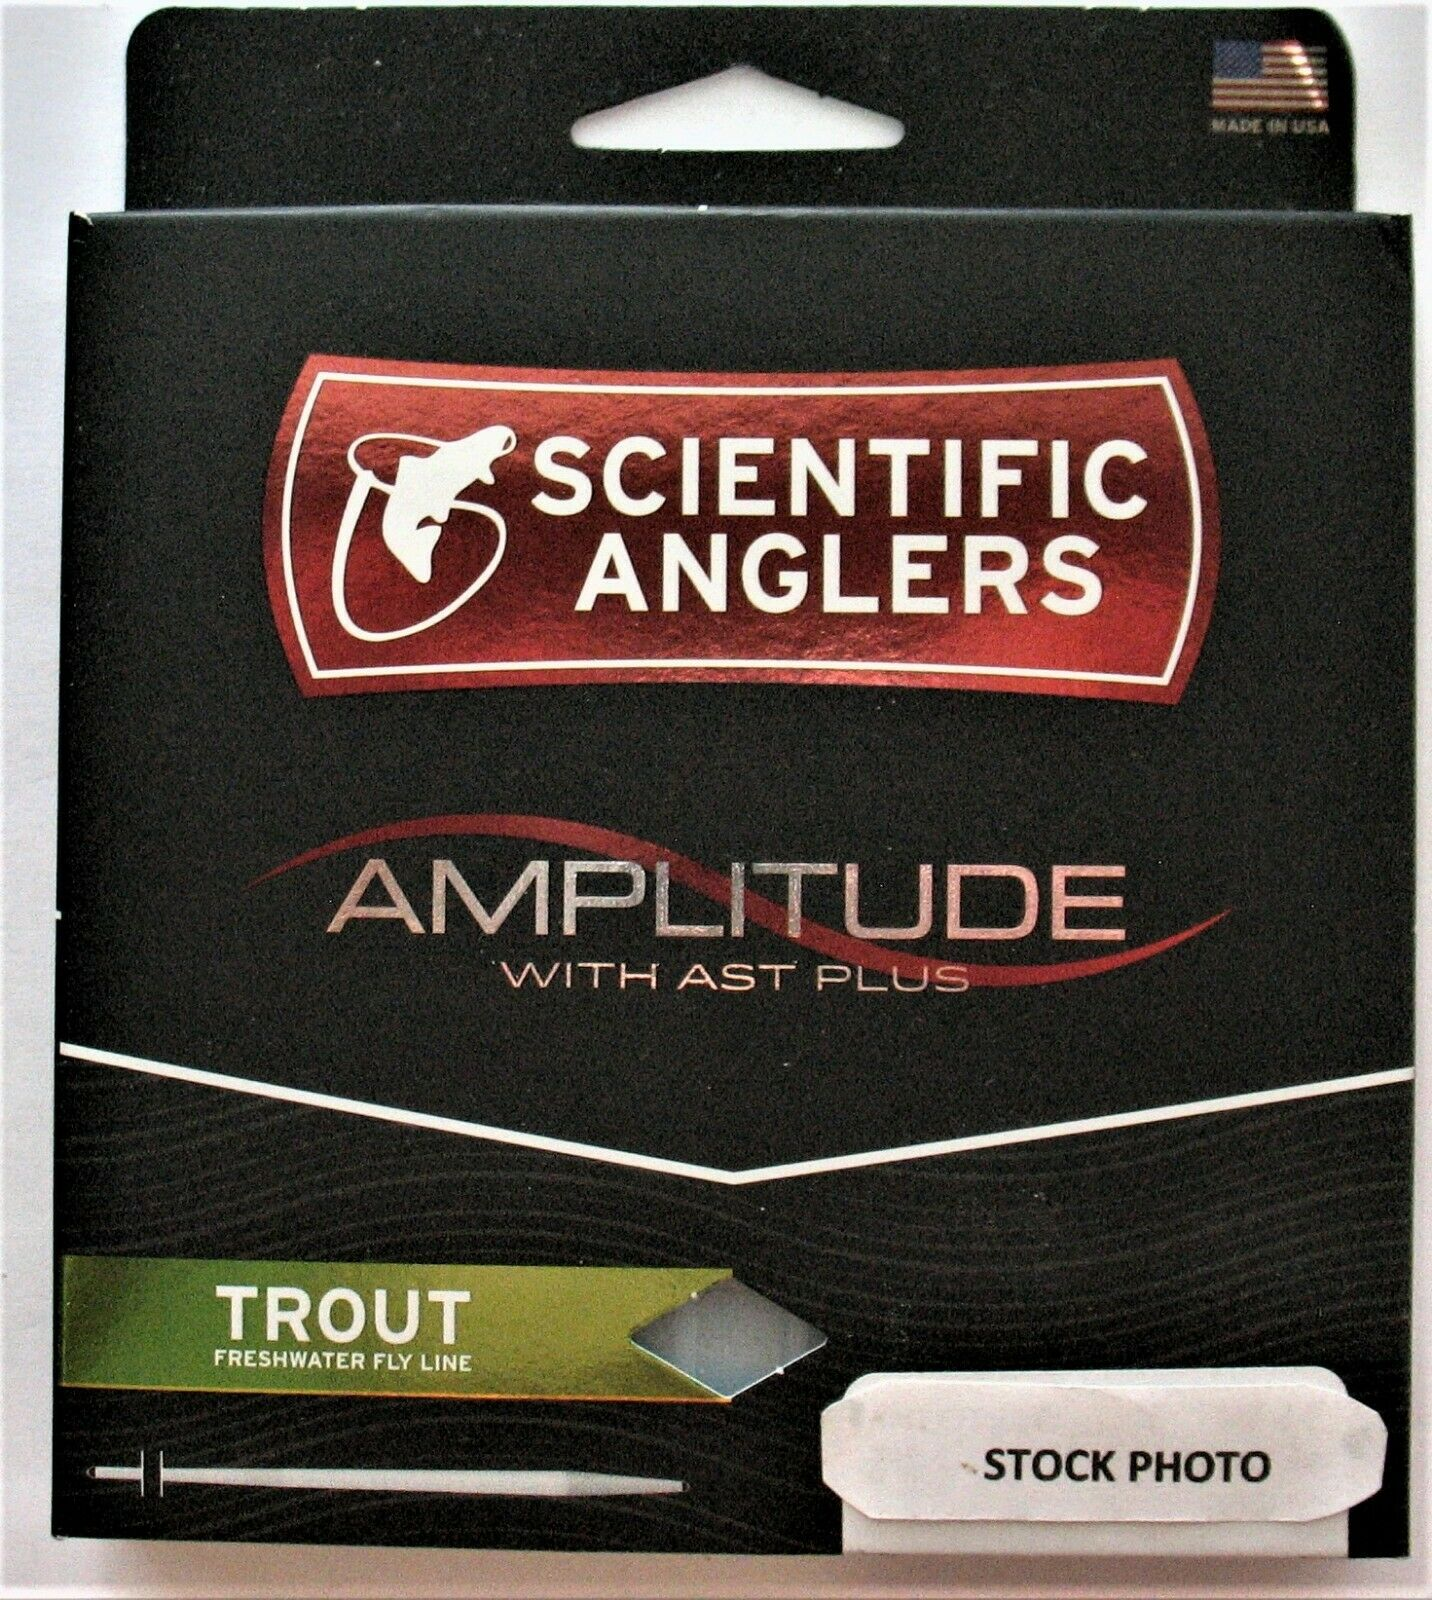 Scientific Anglers Amplitude Smooth Trout Taper Fly LineFREE WARP SPEED SHIPPING